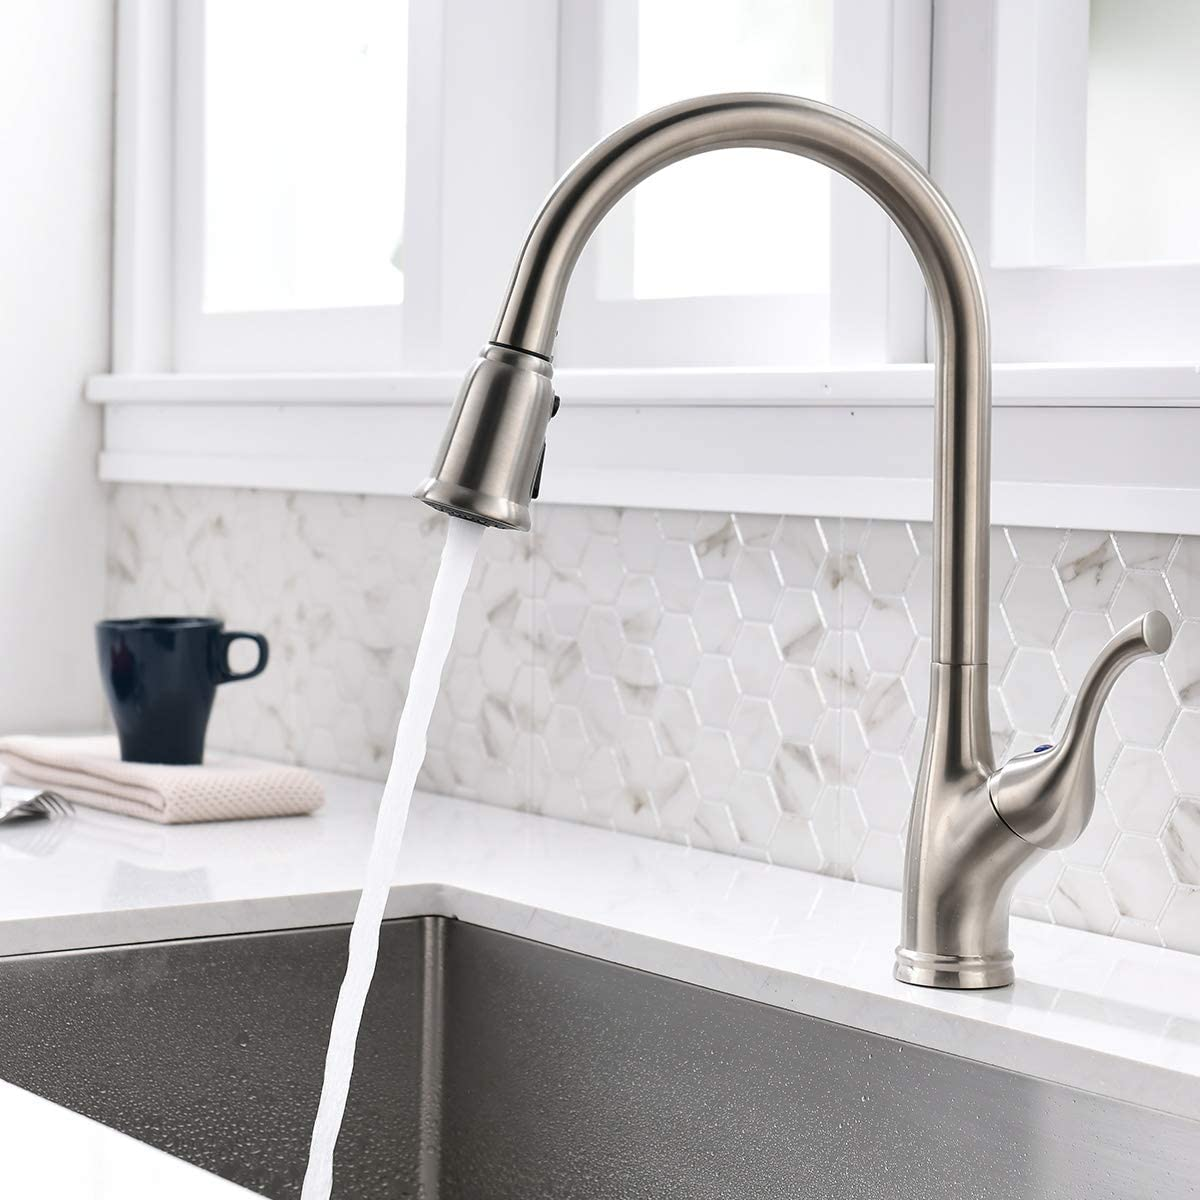 High Arc Kitchen Faucet with Pull down Sprayer 360 Swivel Brushed Nickel K109BN Single Handle Pull out Kitchen Sink Faucet Without Deck Plate